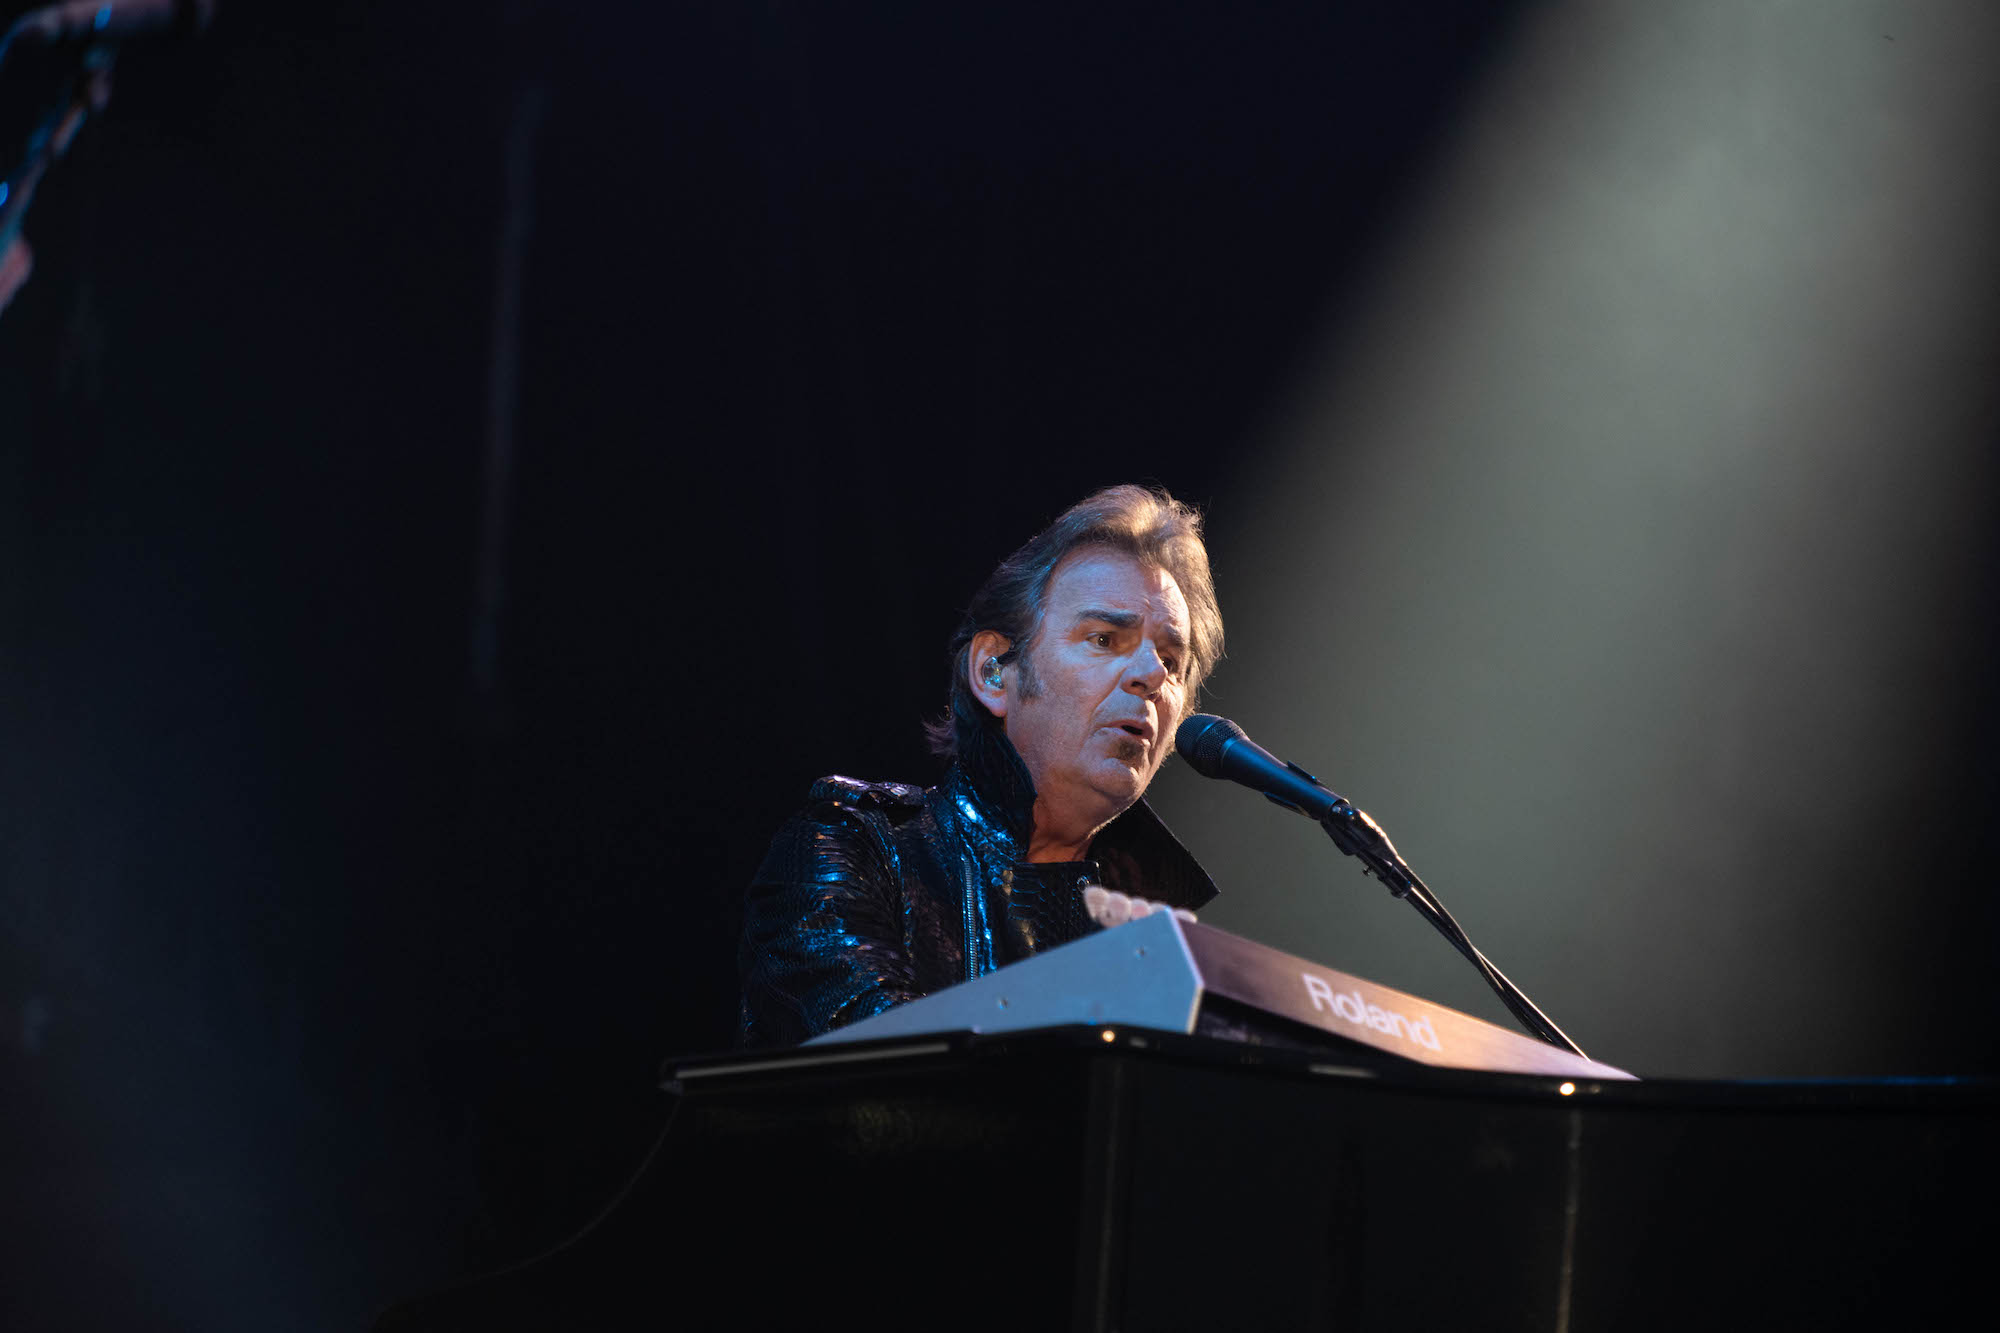 Journey Live at Lollapalooza [GALLERY] 24